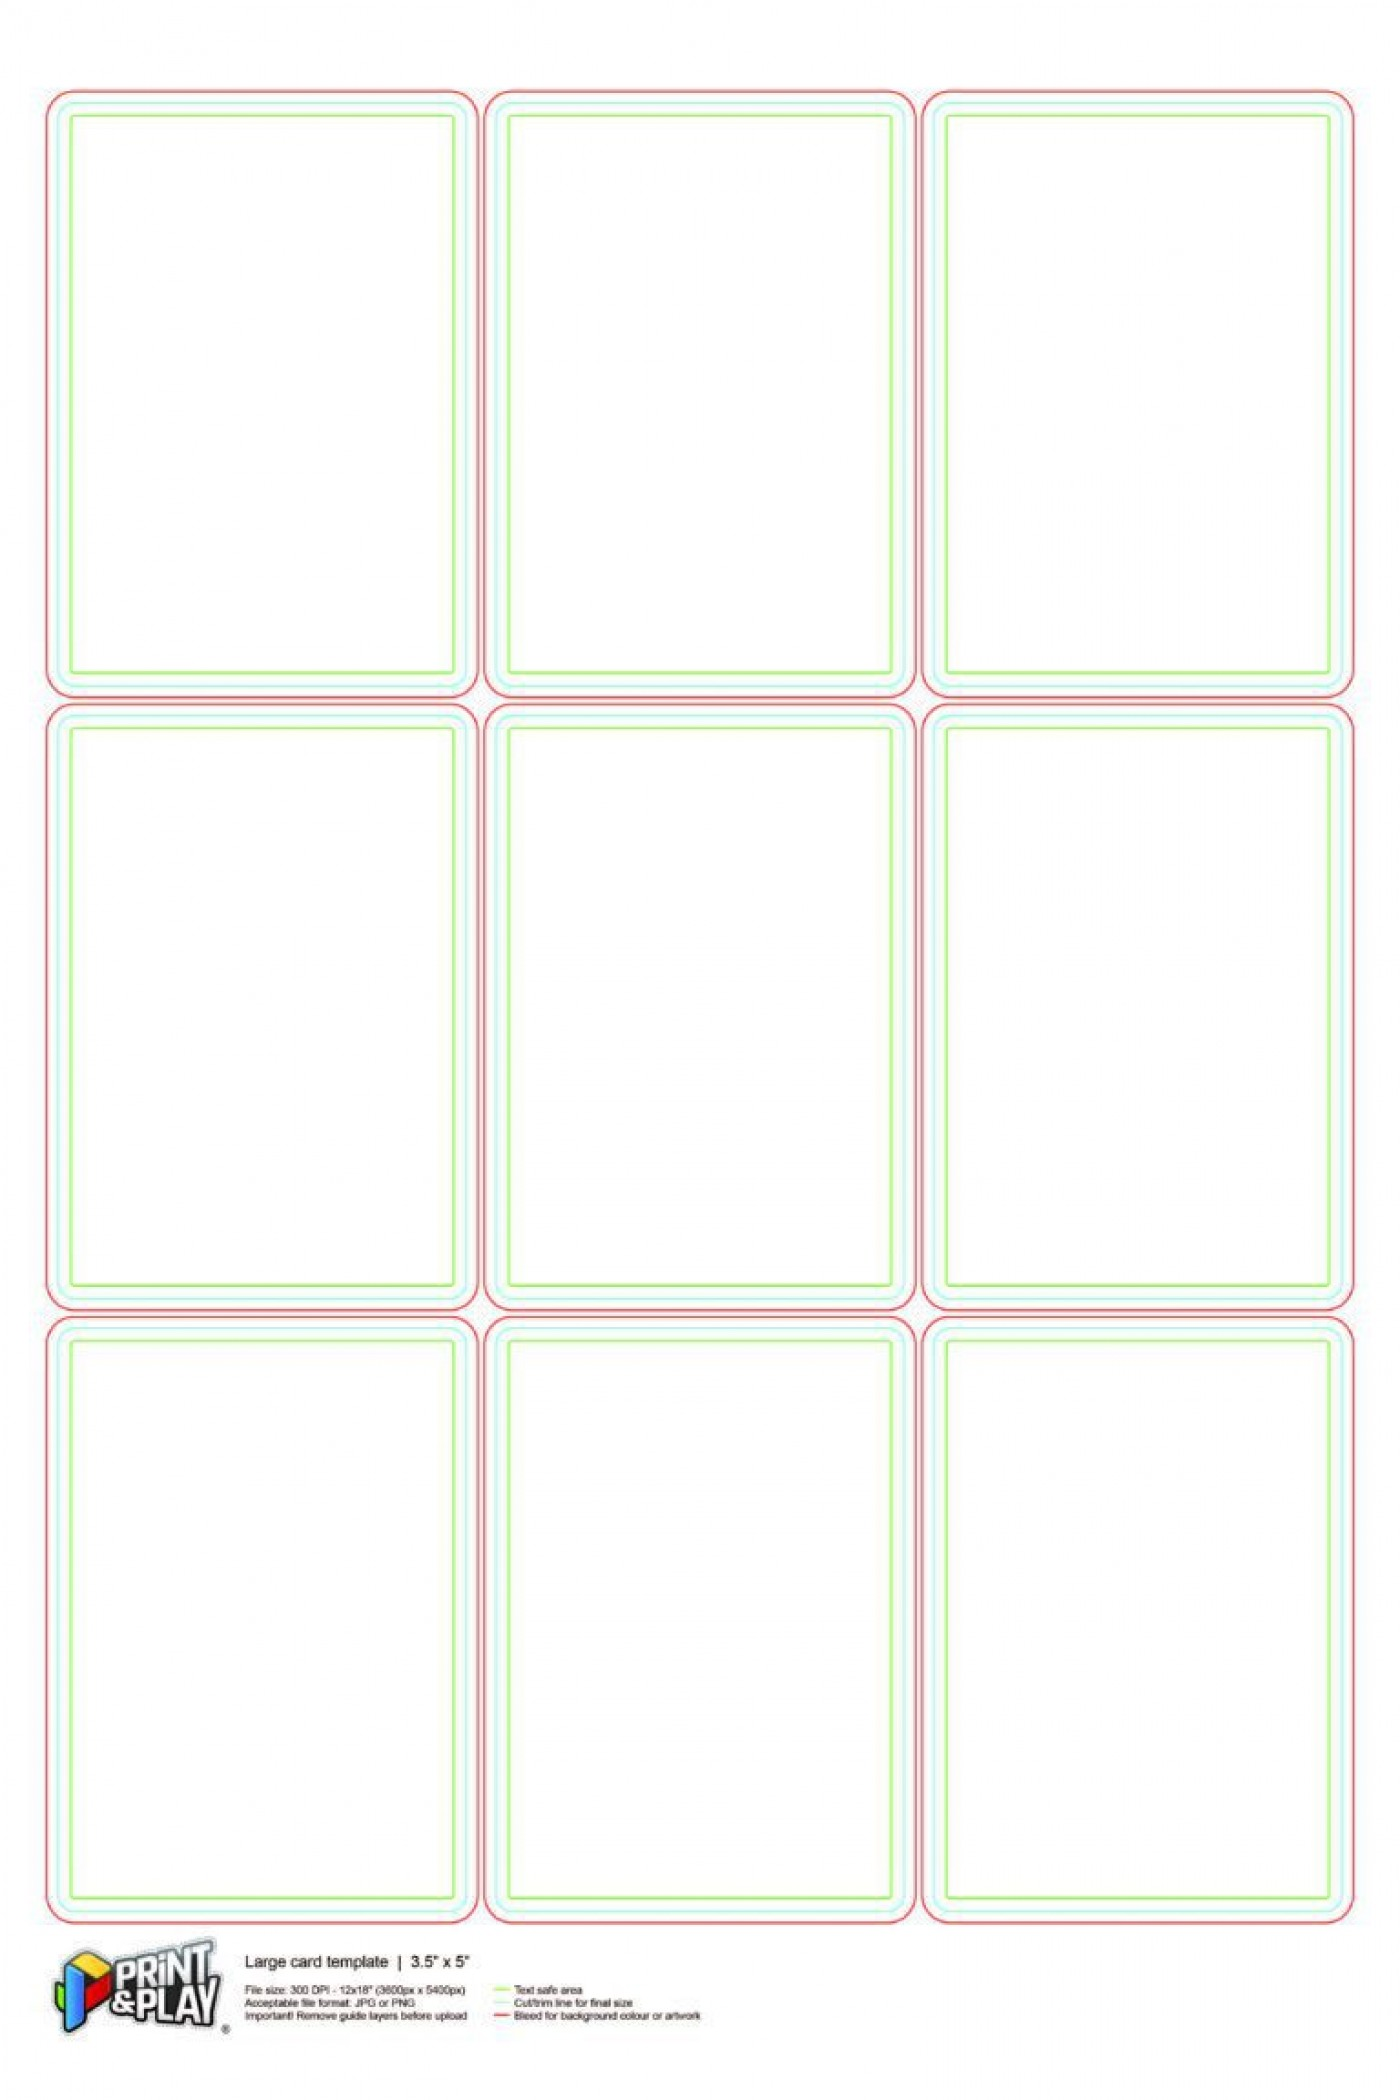 000 Stupendou Playing Card Size Template Idea  Game Standard1400